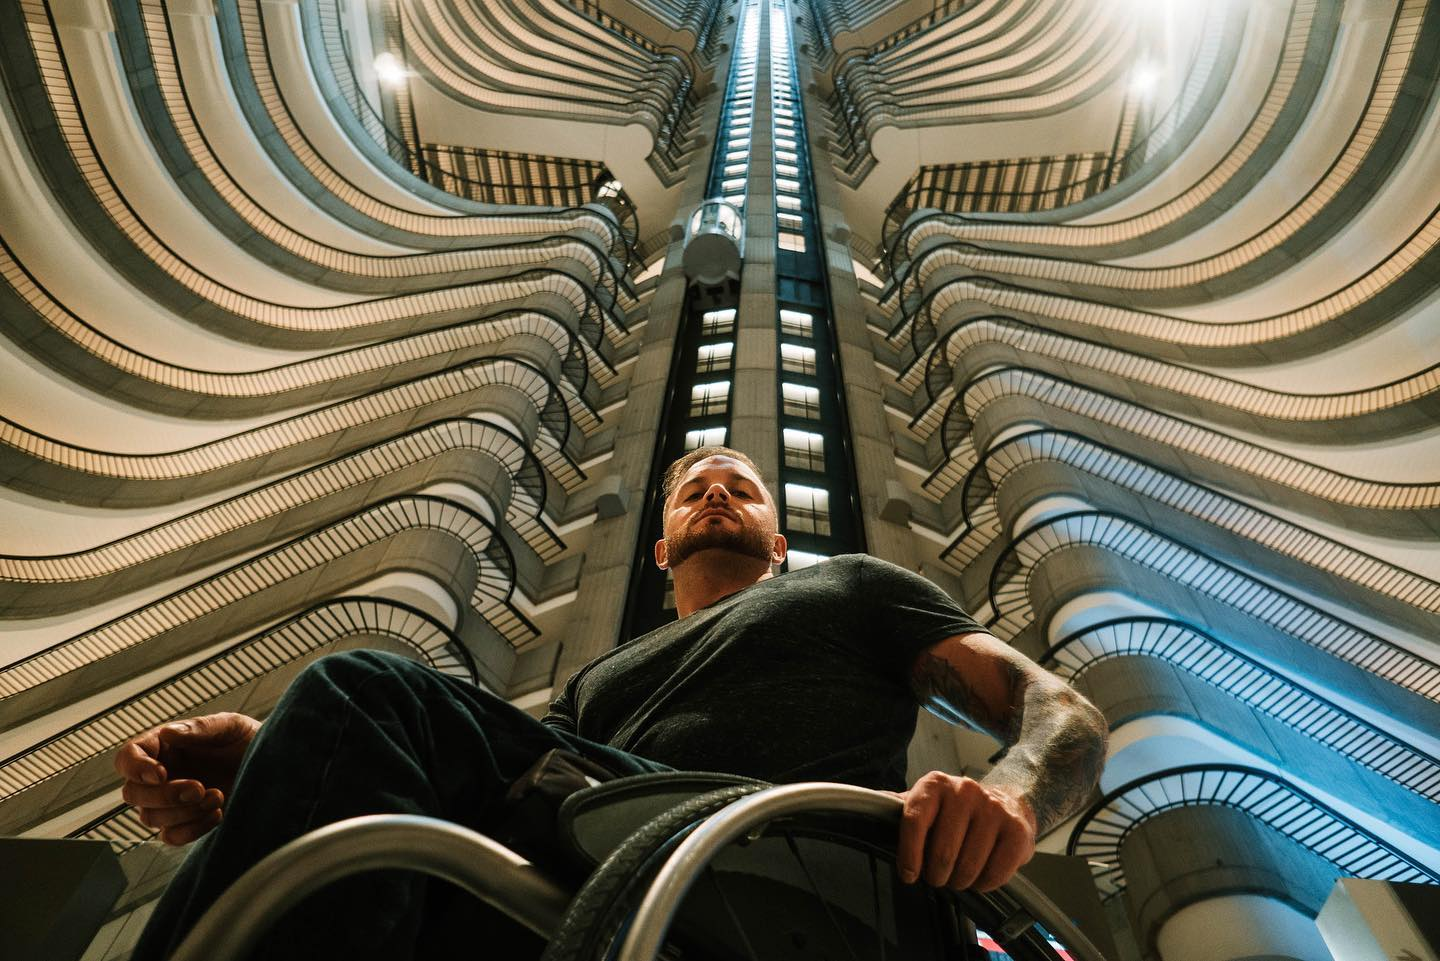 Richard Corbett is in his wheelchair wearing all black. In the background we see a very high building with many stories and an elevator shaft going up the middle.